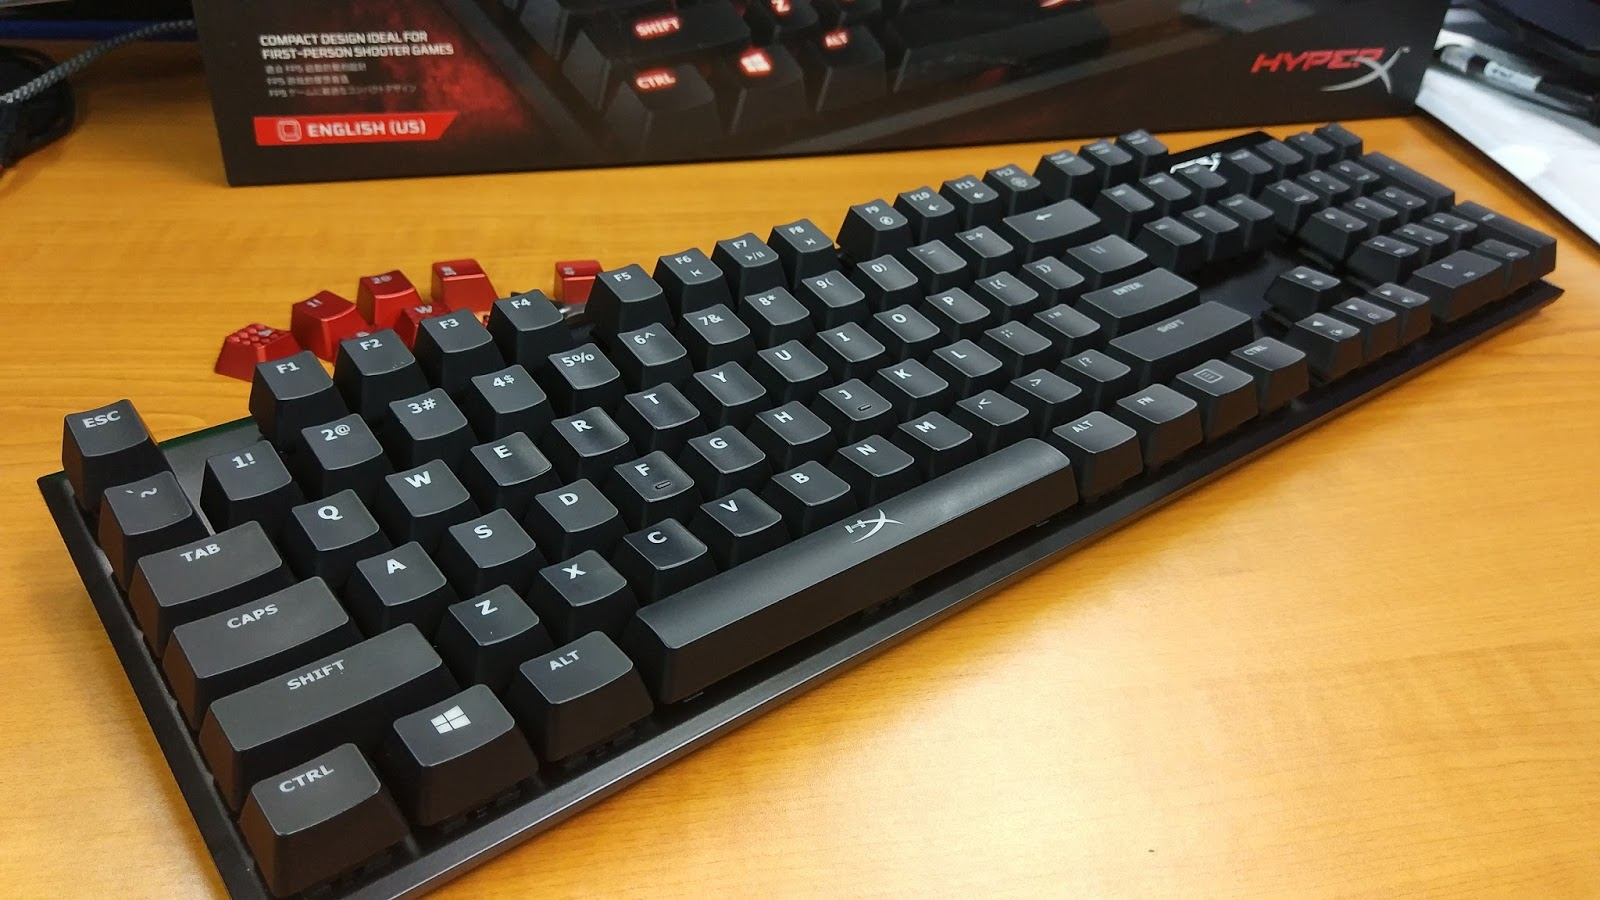 8ea2119a2c2 Not your typical Mechanical Gaming Keyboard - Review of the HyperX ...